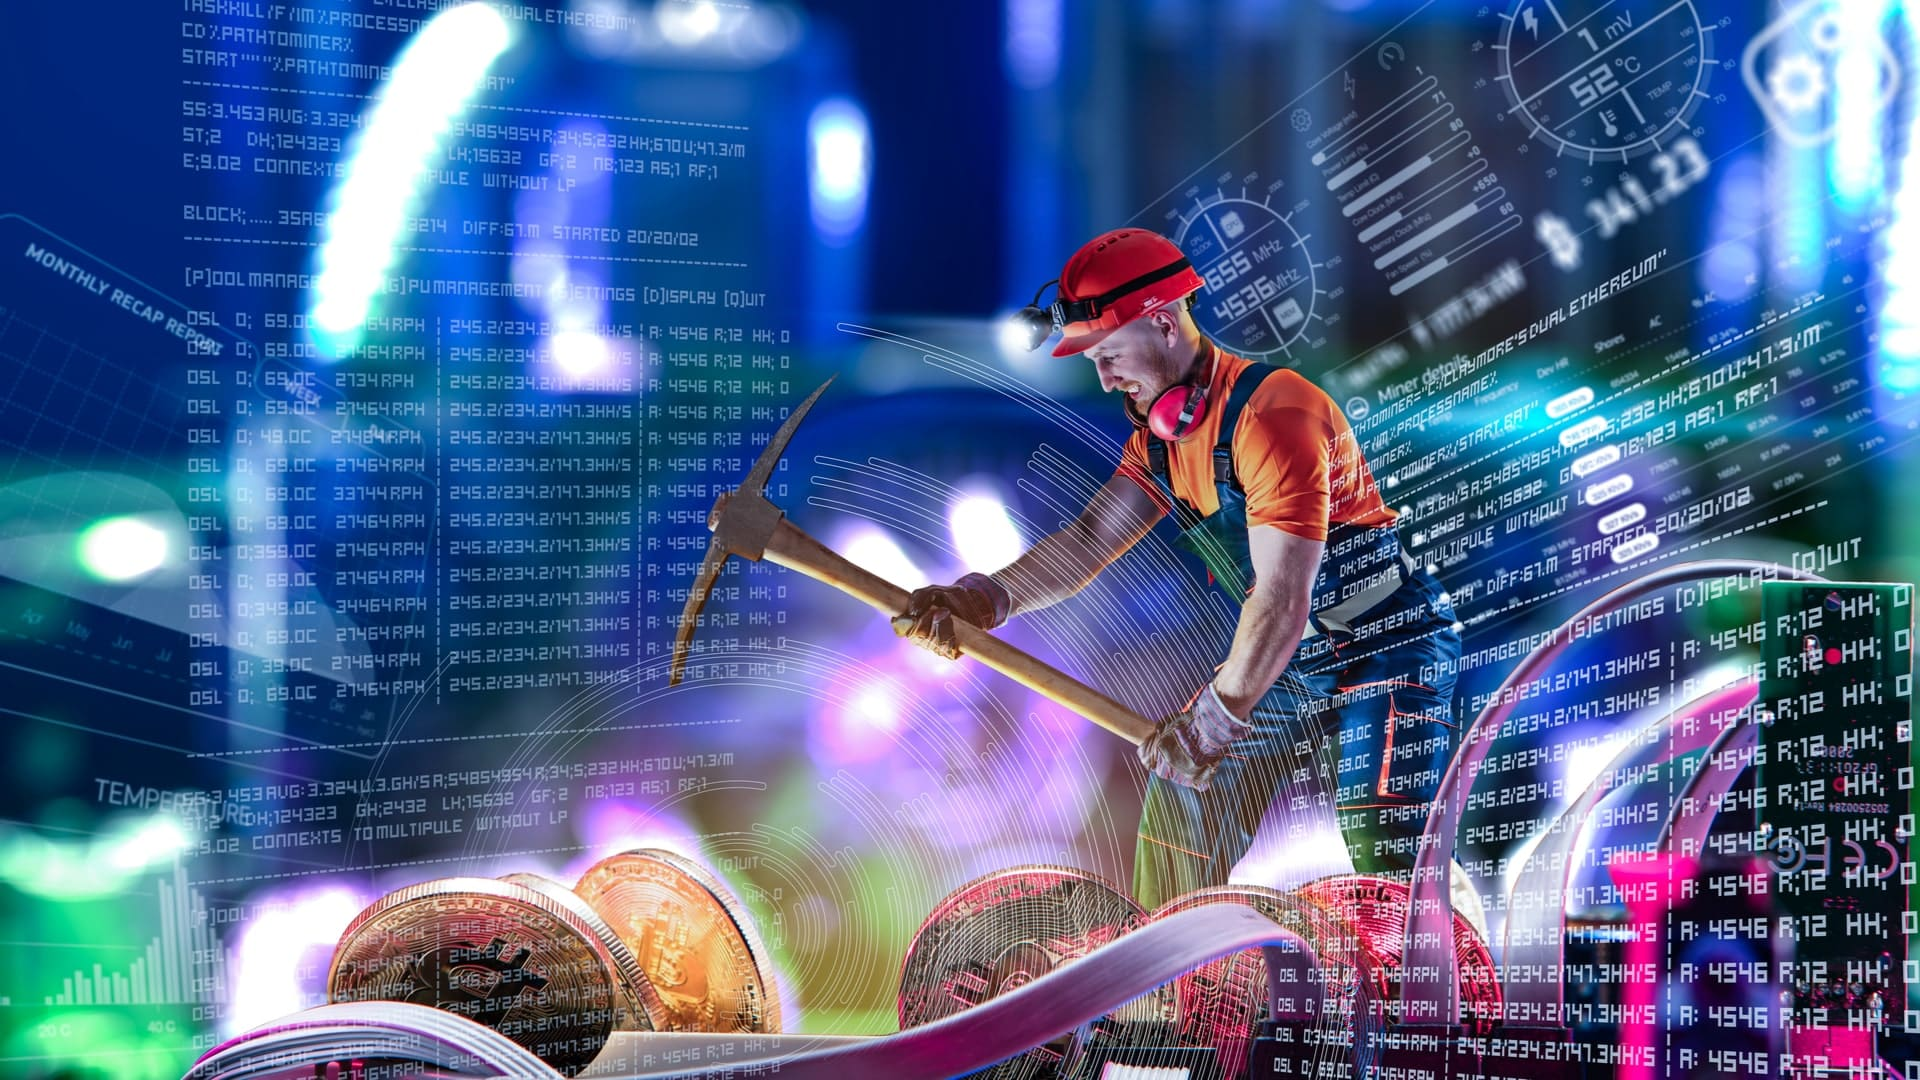 Powercrypto will start mining BTC and ETH in Hong Kong in the middle of a Chinese ban